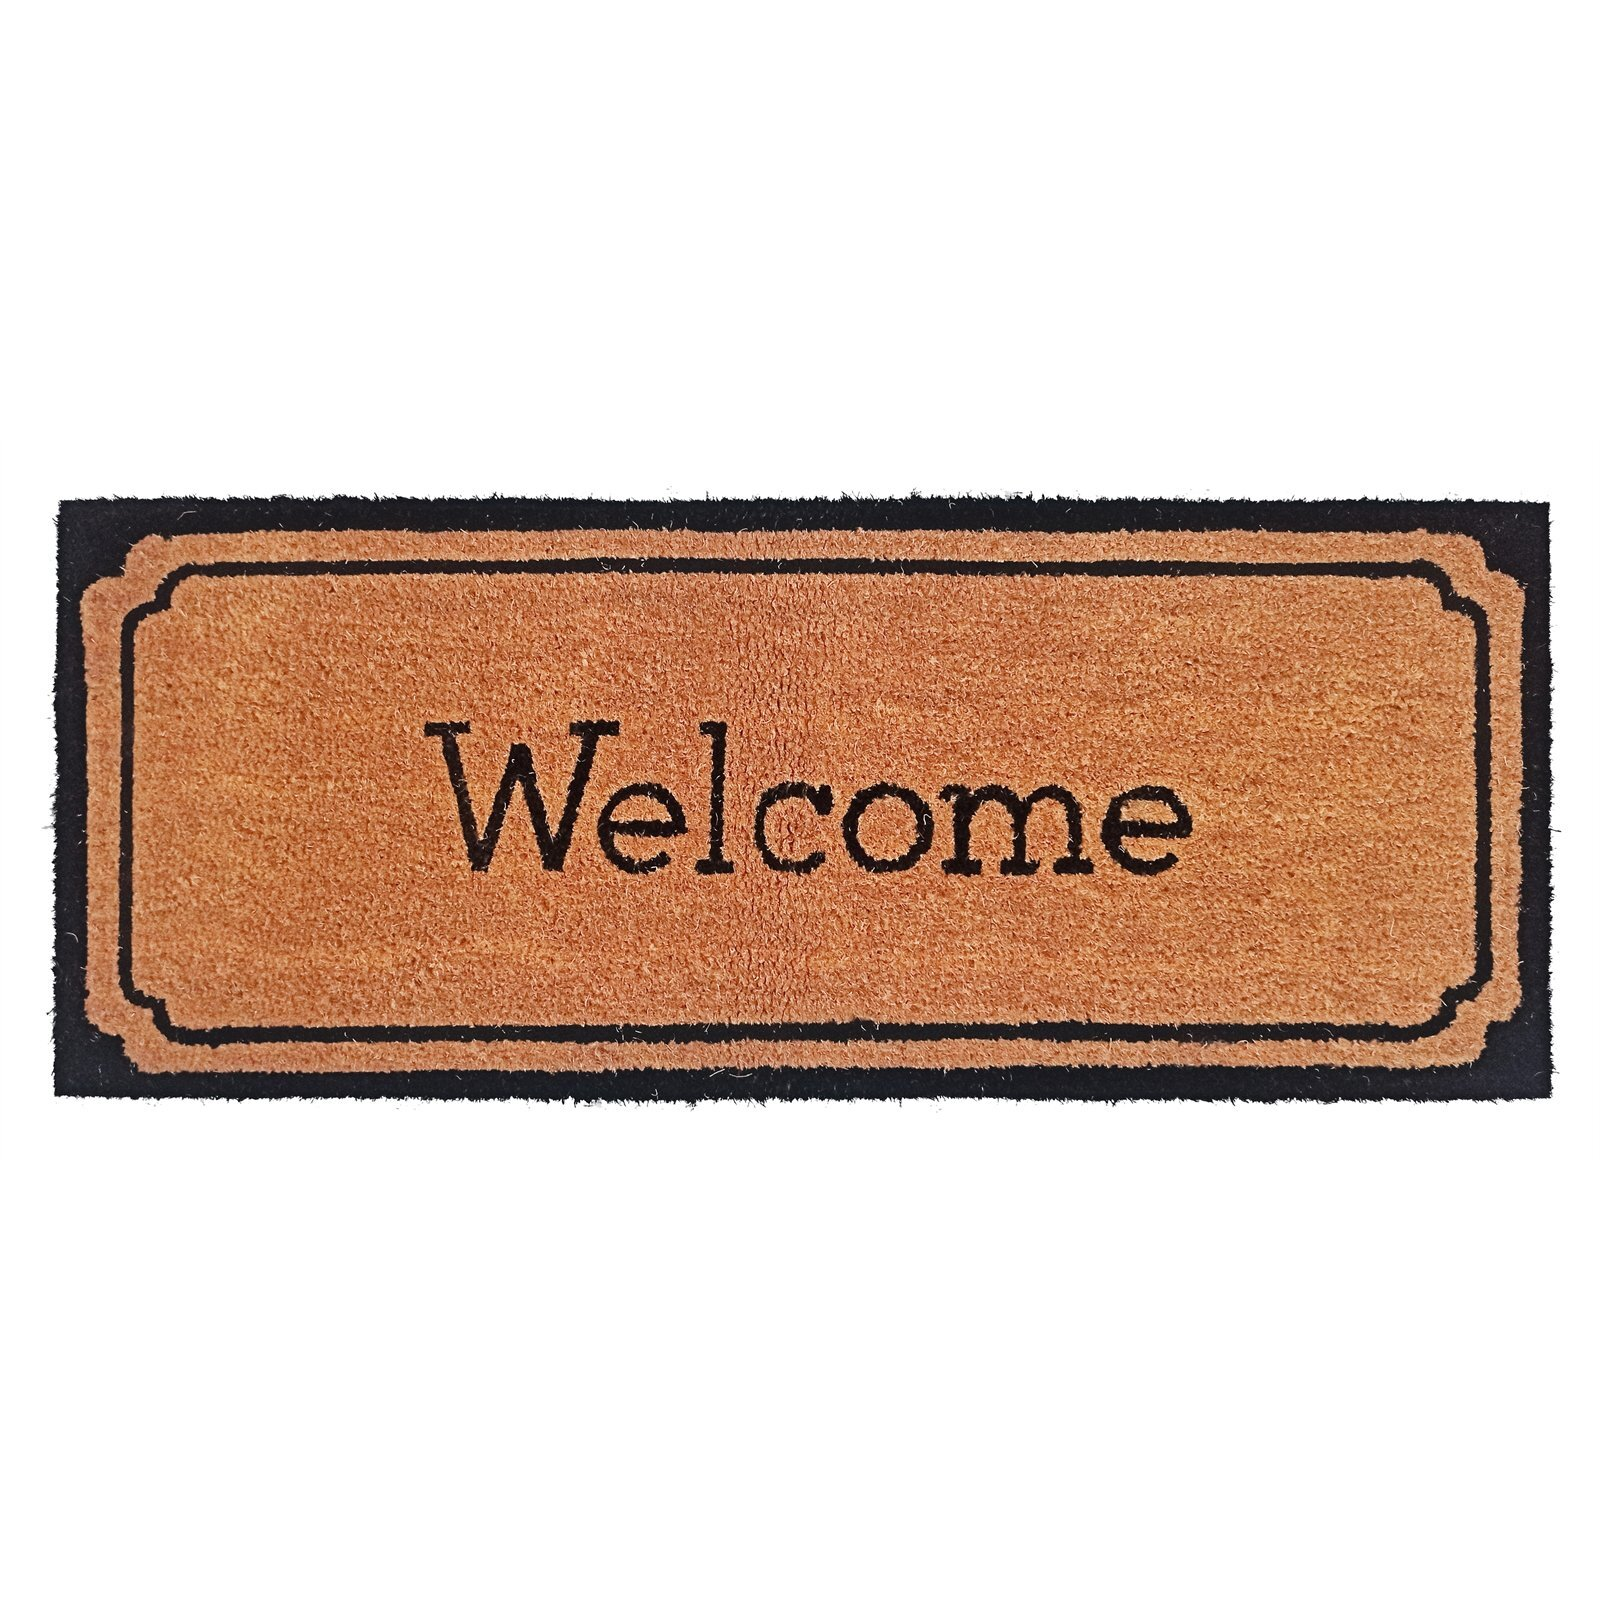 114 x 45cm Welcome With Black Border PVC Backed Outdoor Coir Mat